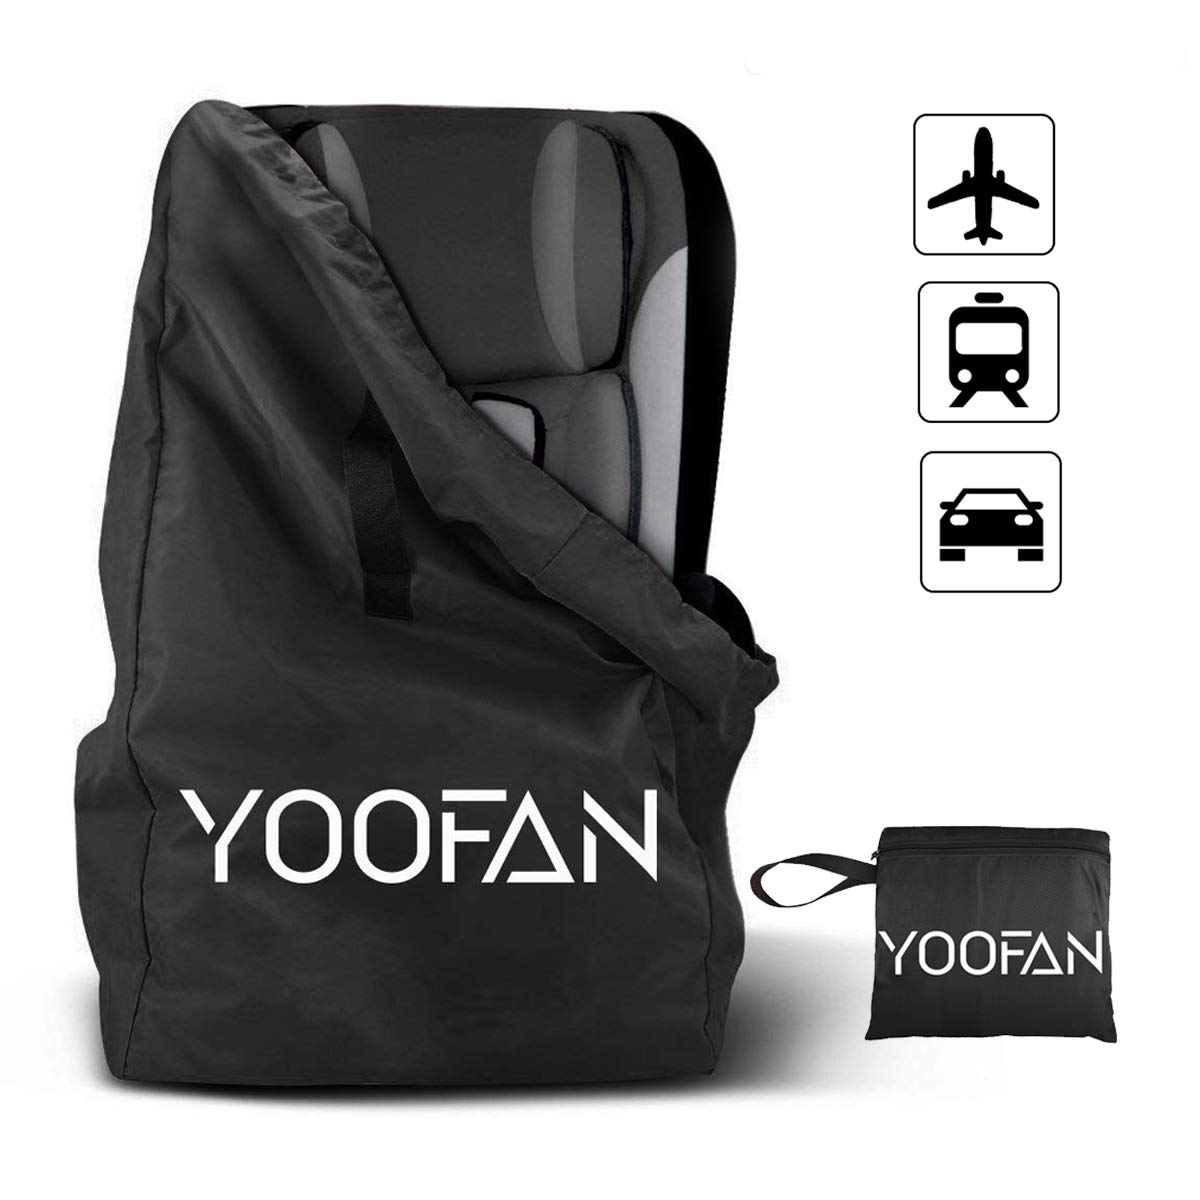 YOOFAN Gate Check BagTravel Backpack With Shoulder Straps For StrollerCar Seats